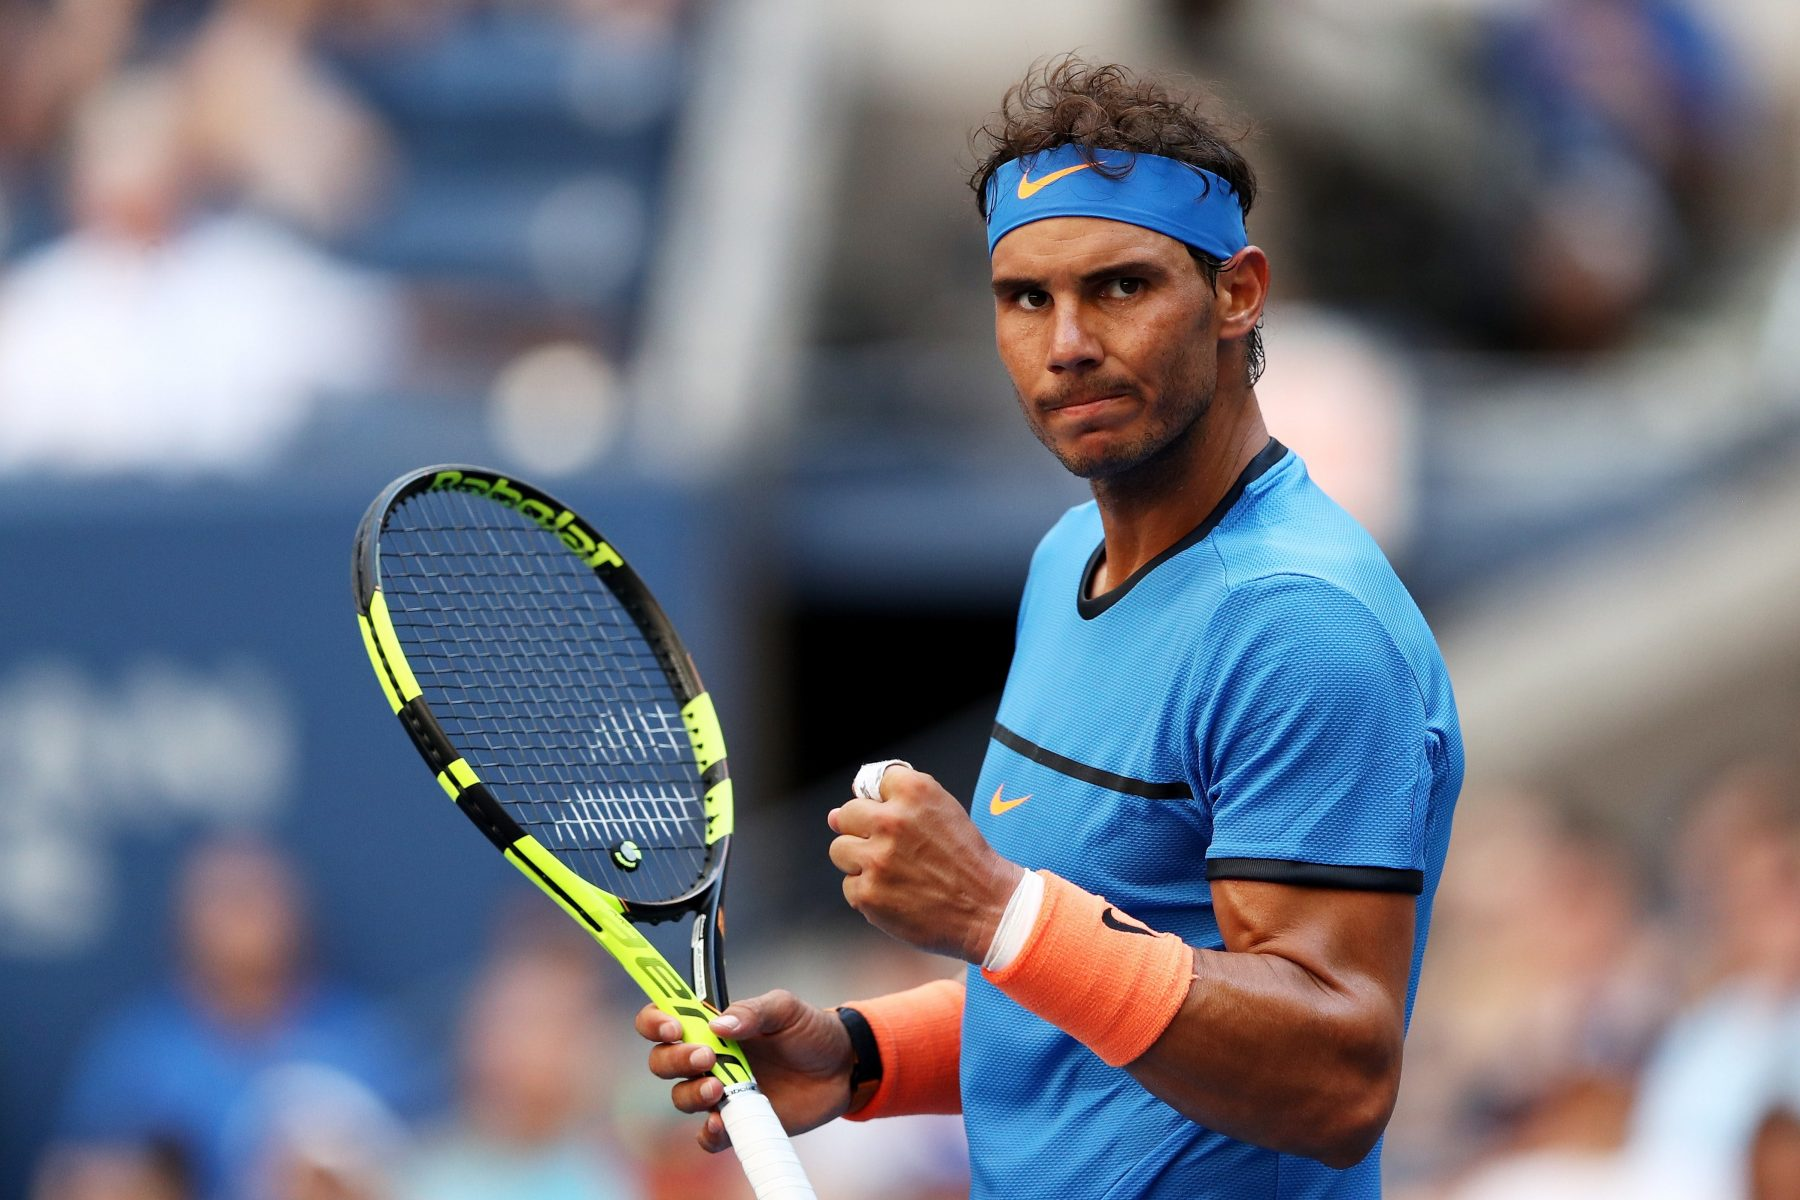 Rafael Nadal Hd Wallpapers 7wallpapers Net